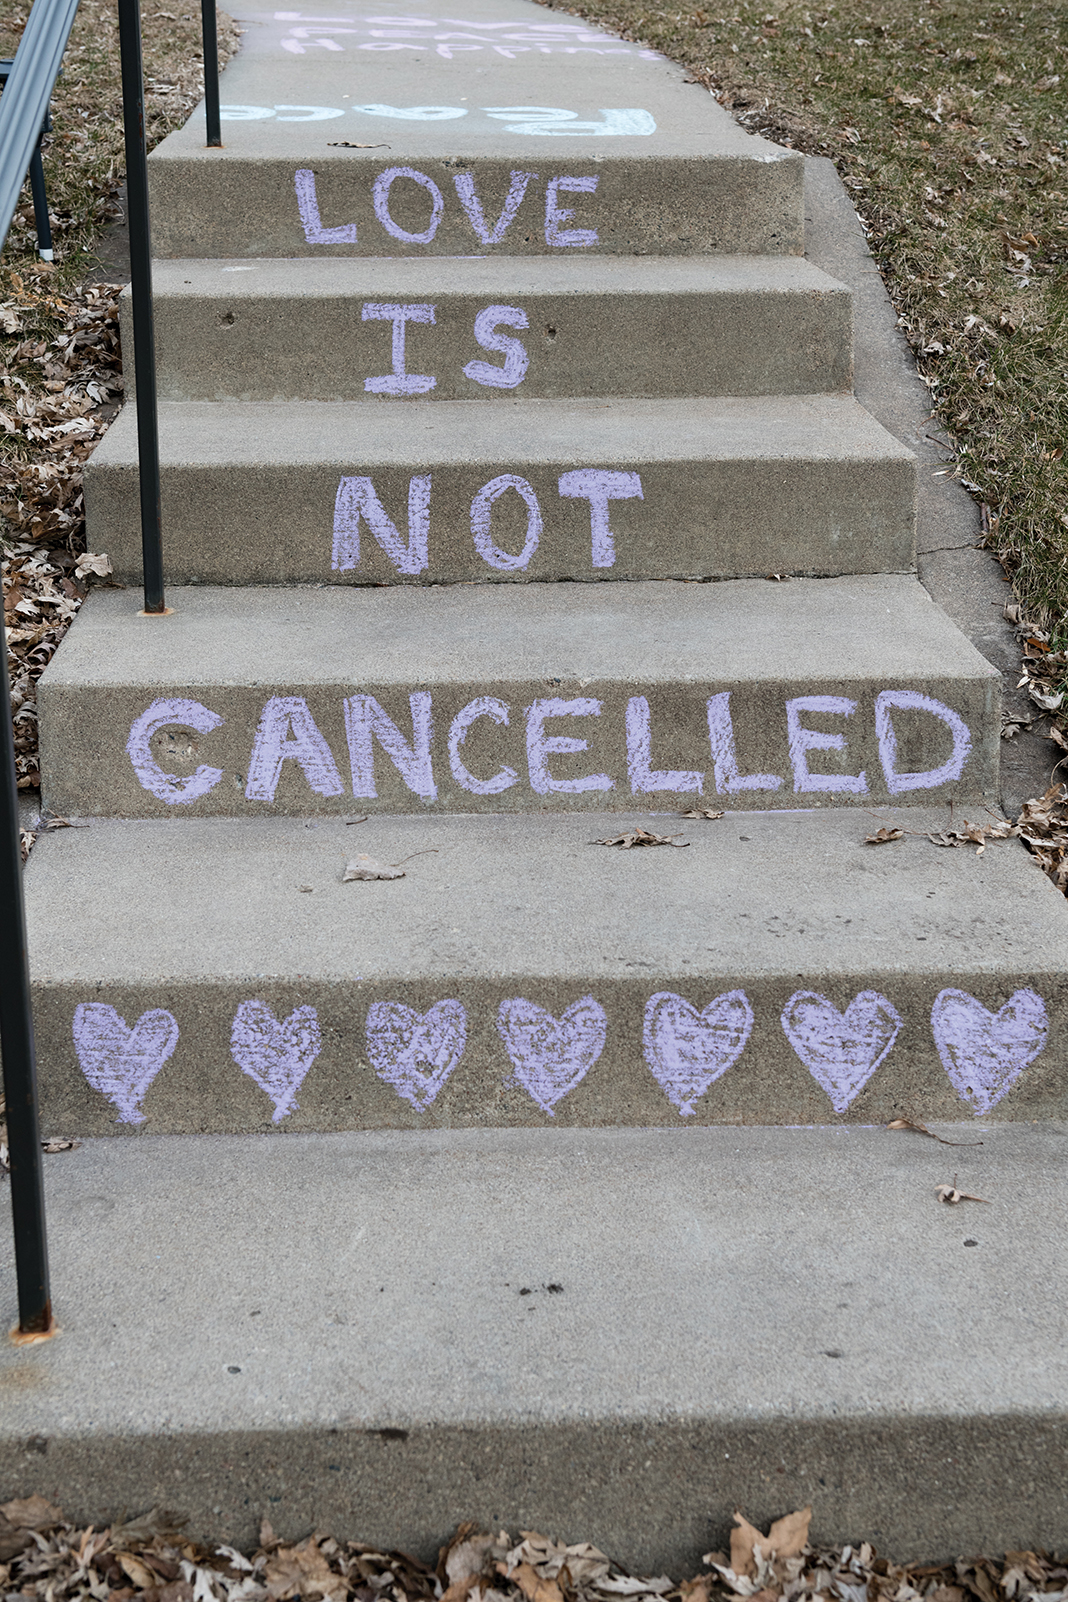 Concrete steps display one of many positive messages